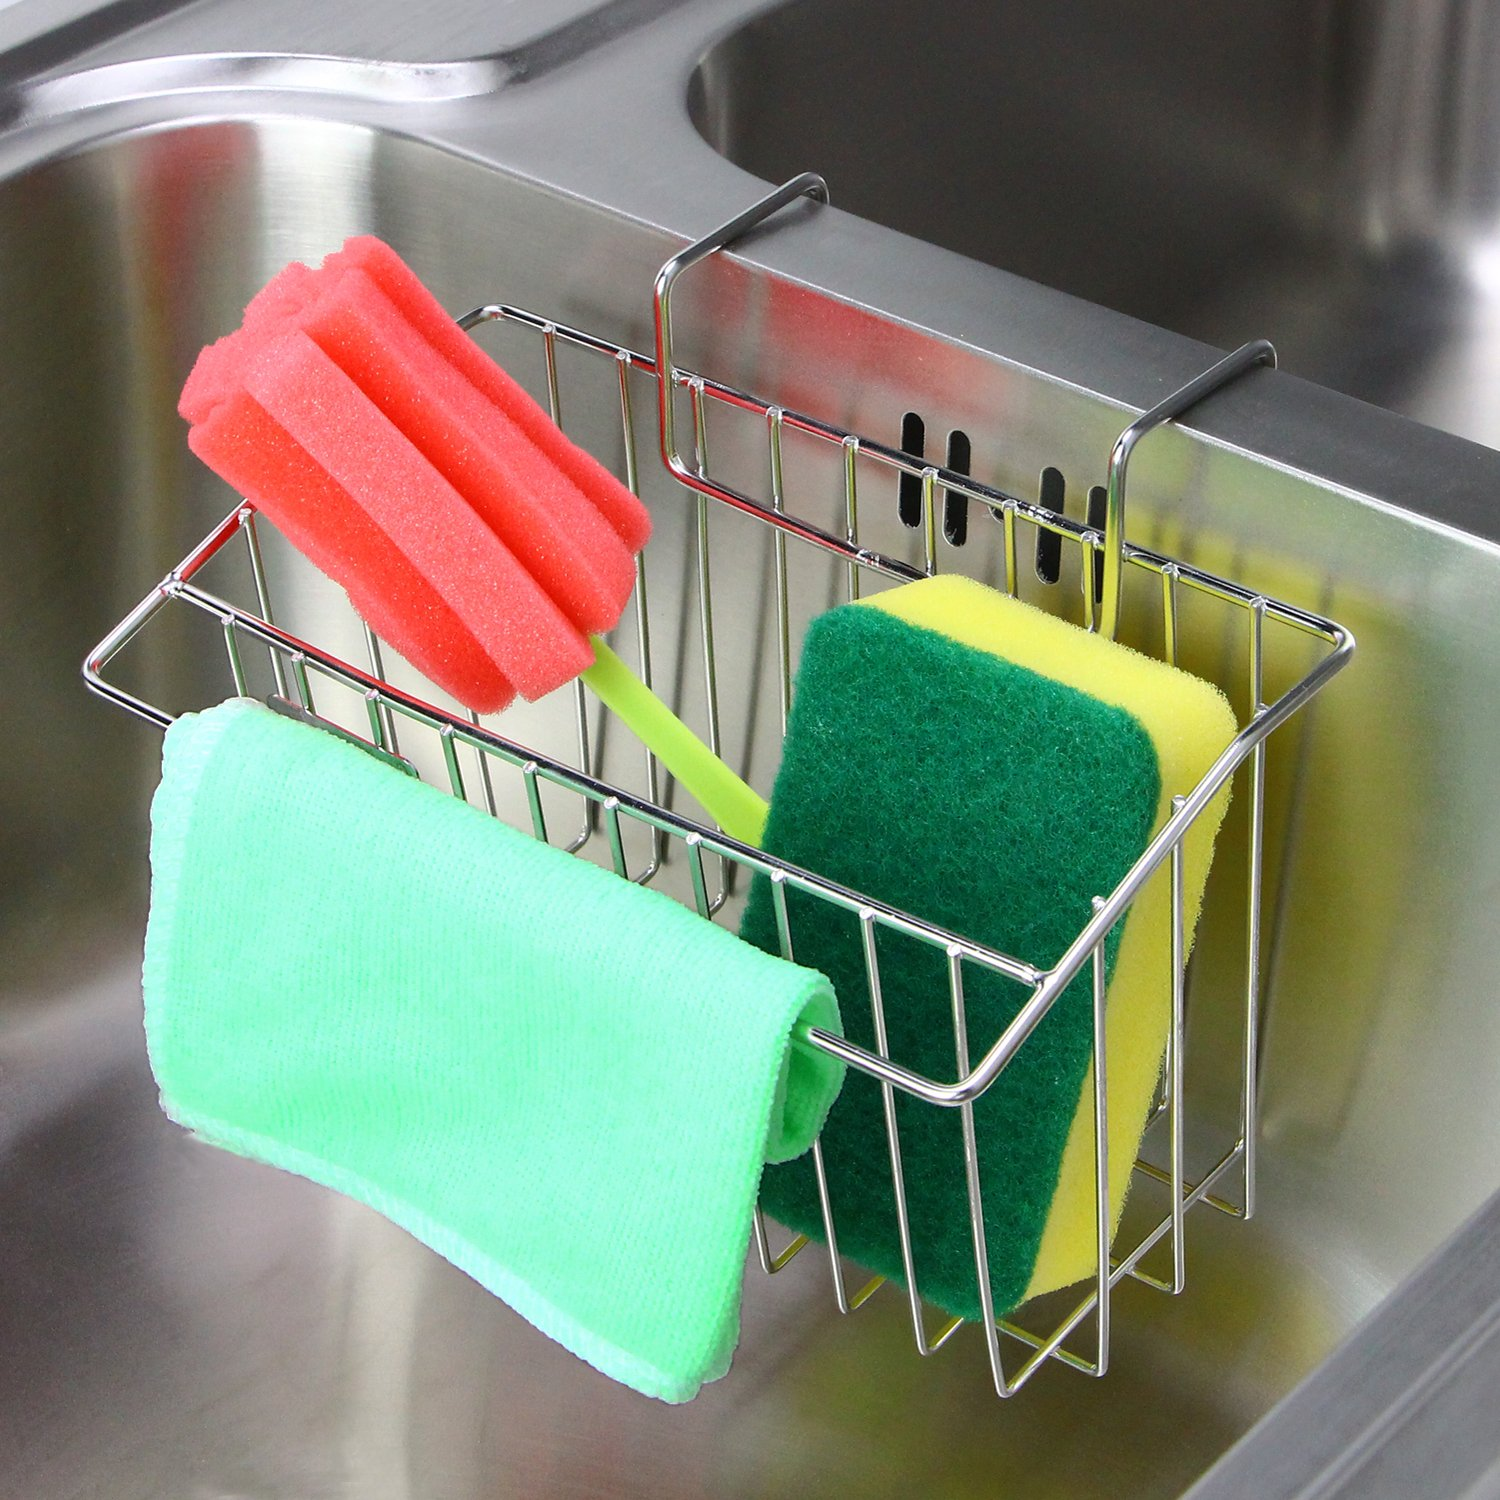 Aiduy Sponge Holder, Sink Caddy Kitchen Brush Soap Dishwashing Liquid Drainer Rack - Stainless Steel by Aiduy